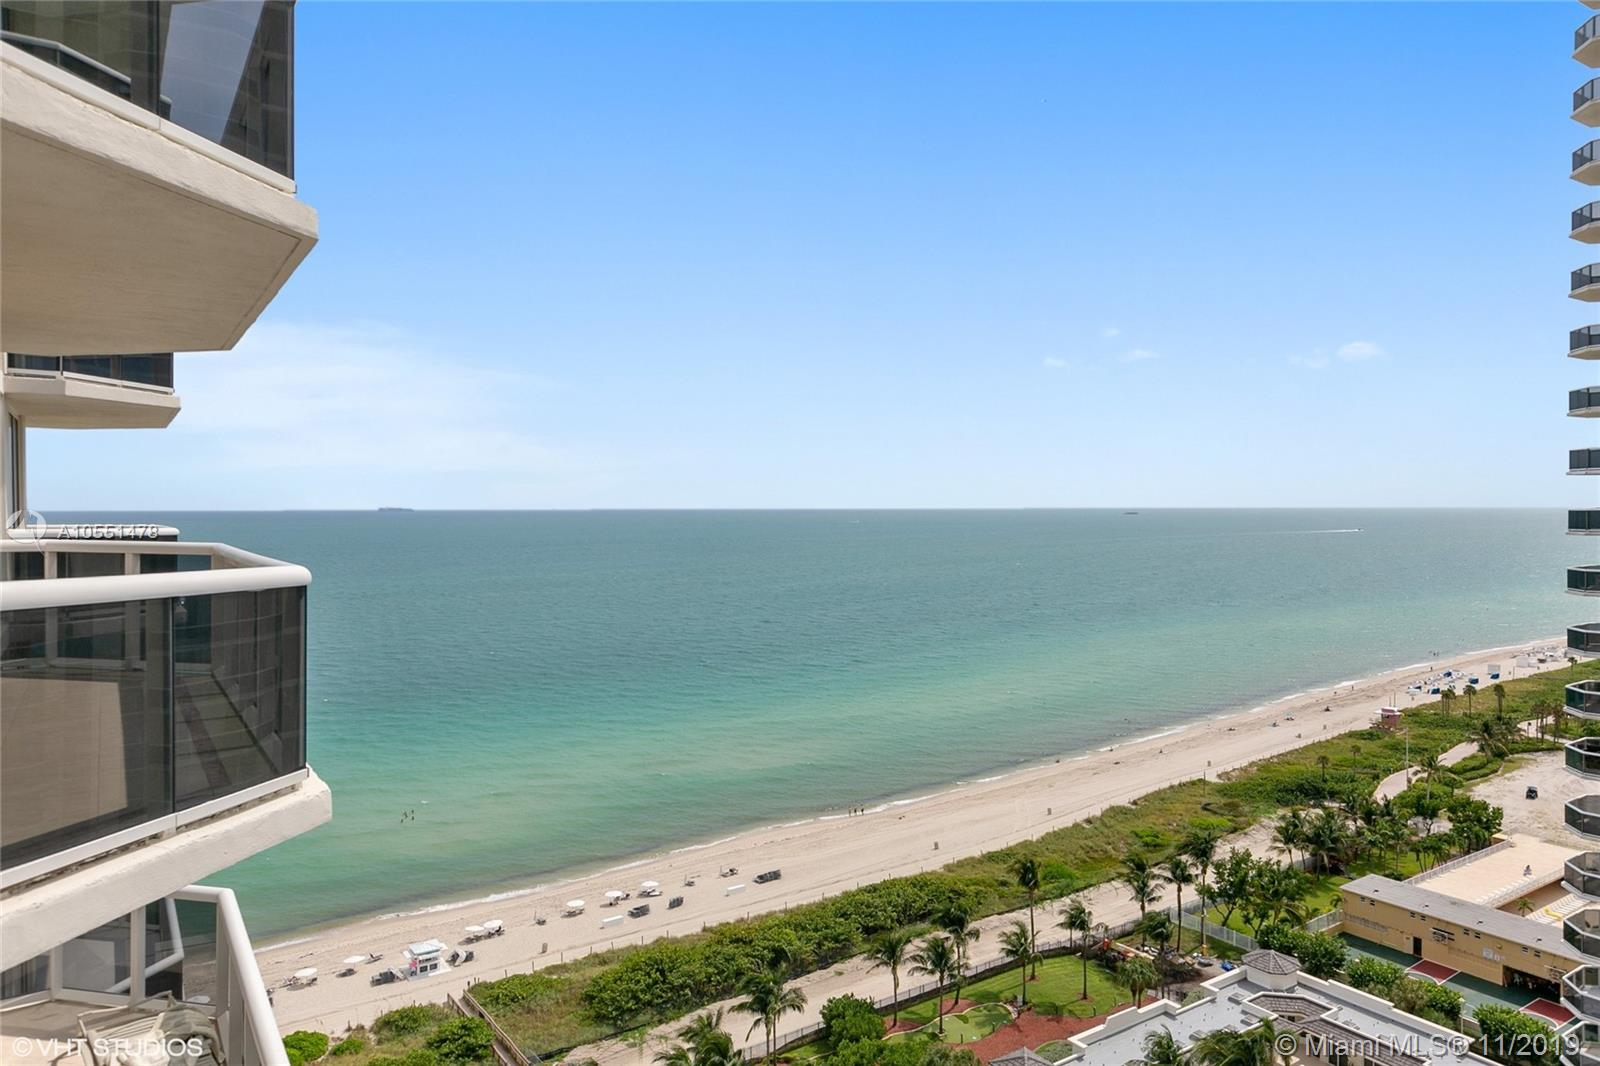 Magnificent Ocean and City views from this large 2 bedrooms, 2 full bath plus a den that was converted into a third bedroom. The master suite with spacious walk-in closet and a large bath with Jacuzzi and separate shower. Floor-to-ceiling sliding glass doors, big terrace with stunning views  and more details found throughout this residence. This residence in one of the Miami Beach's most prestigious sought after buildings, The Blue & Green Diamond. Stellar location, situated on Millionaires Row, minutes from world-renowned South Beach, erformance Arts Center, Miami International Airport, famous Bal Harbor Shops and Miami Design.